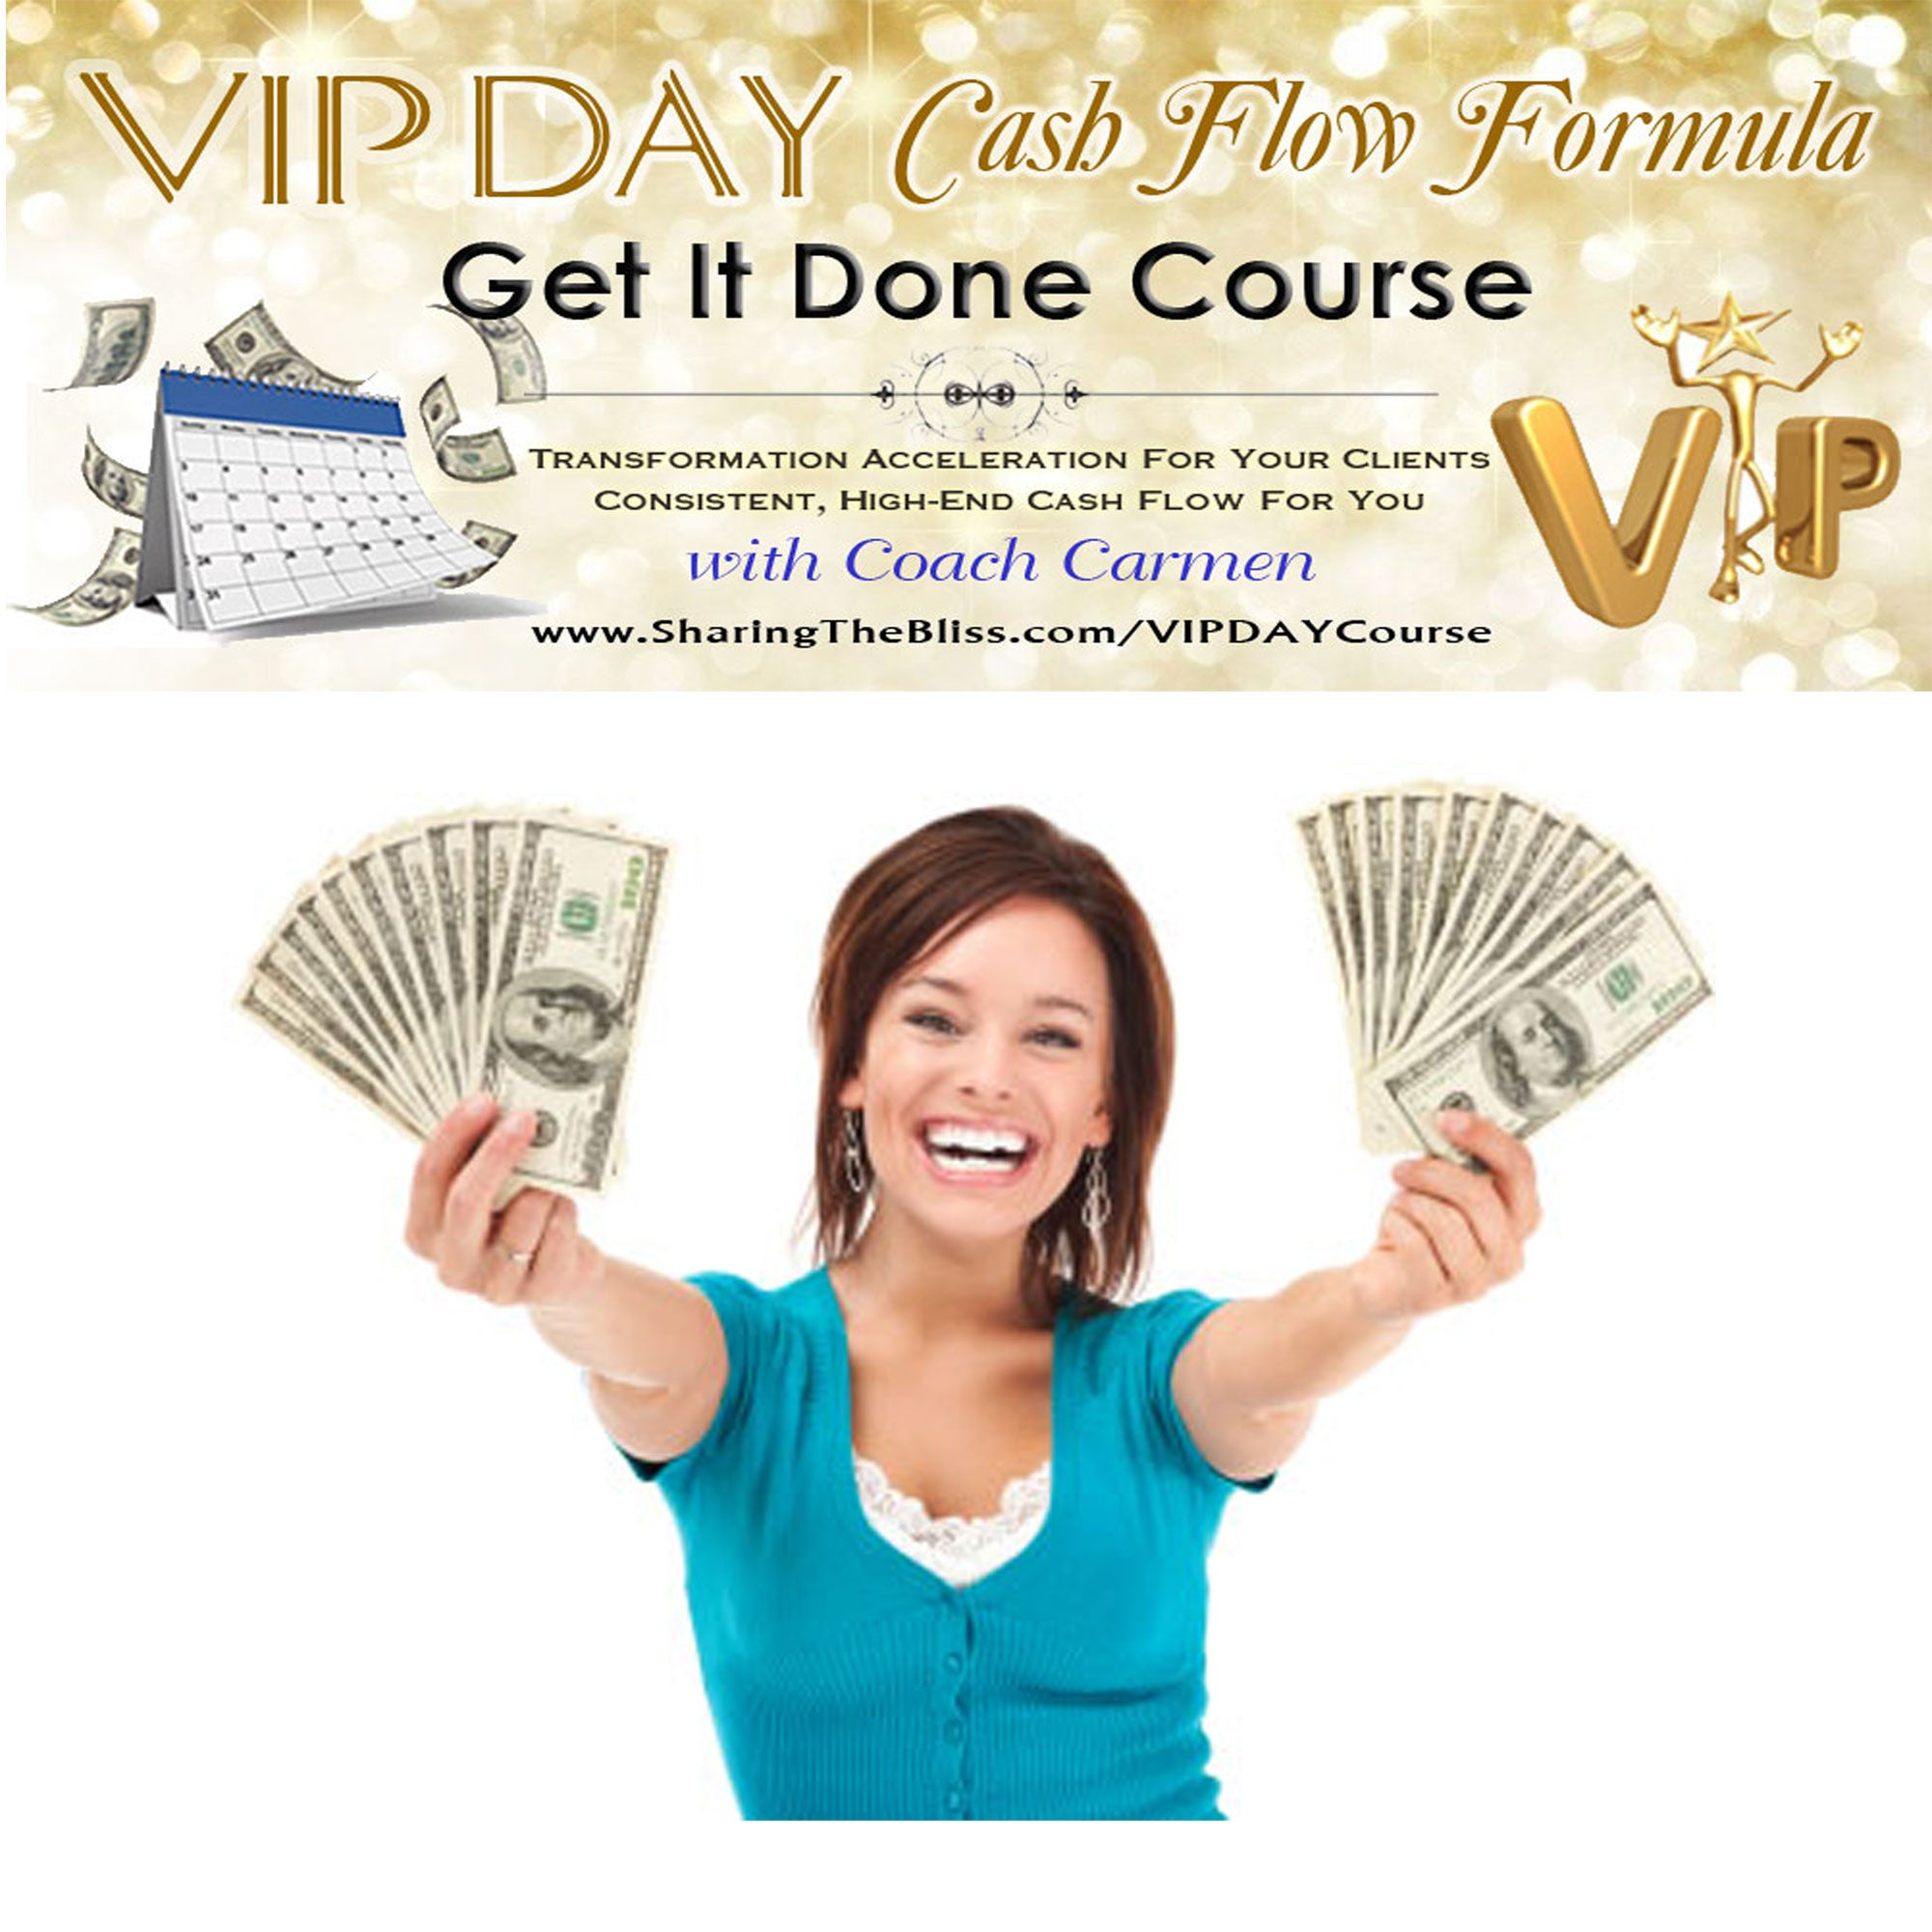 VIP DAY Cash Flow Formula Course (For Certified Detox Coaches)